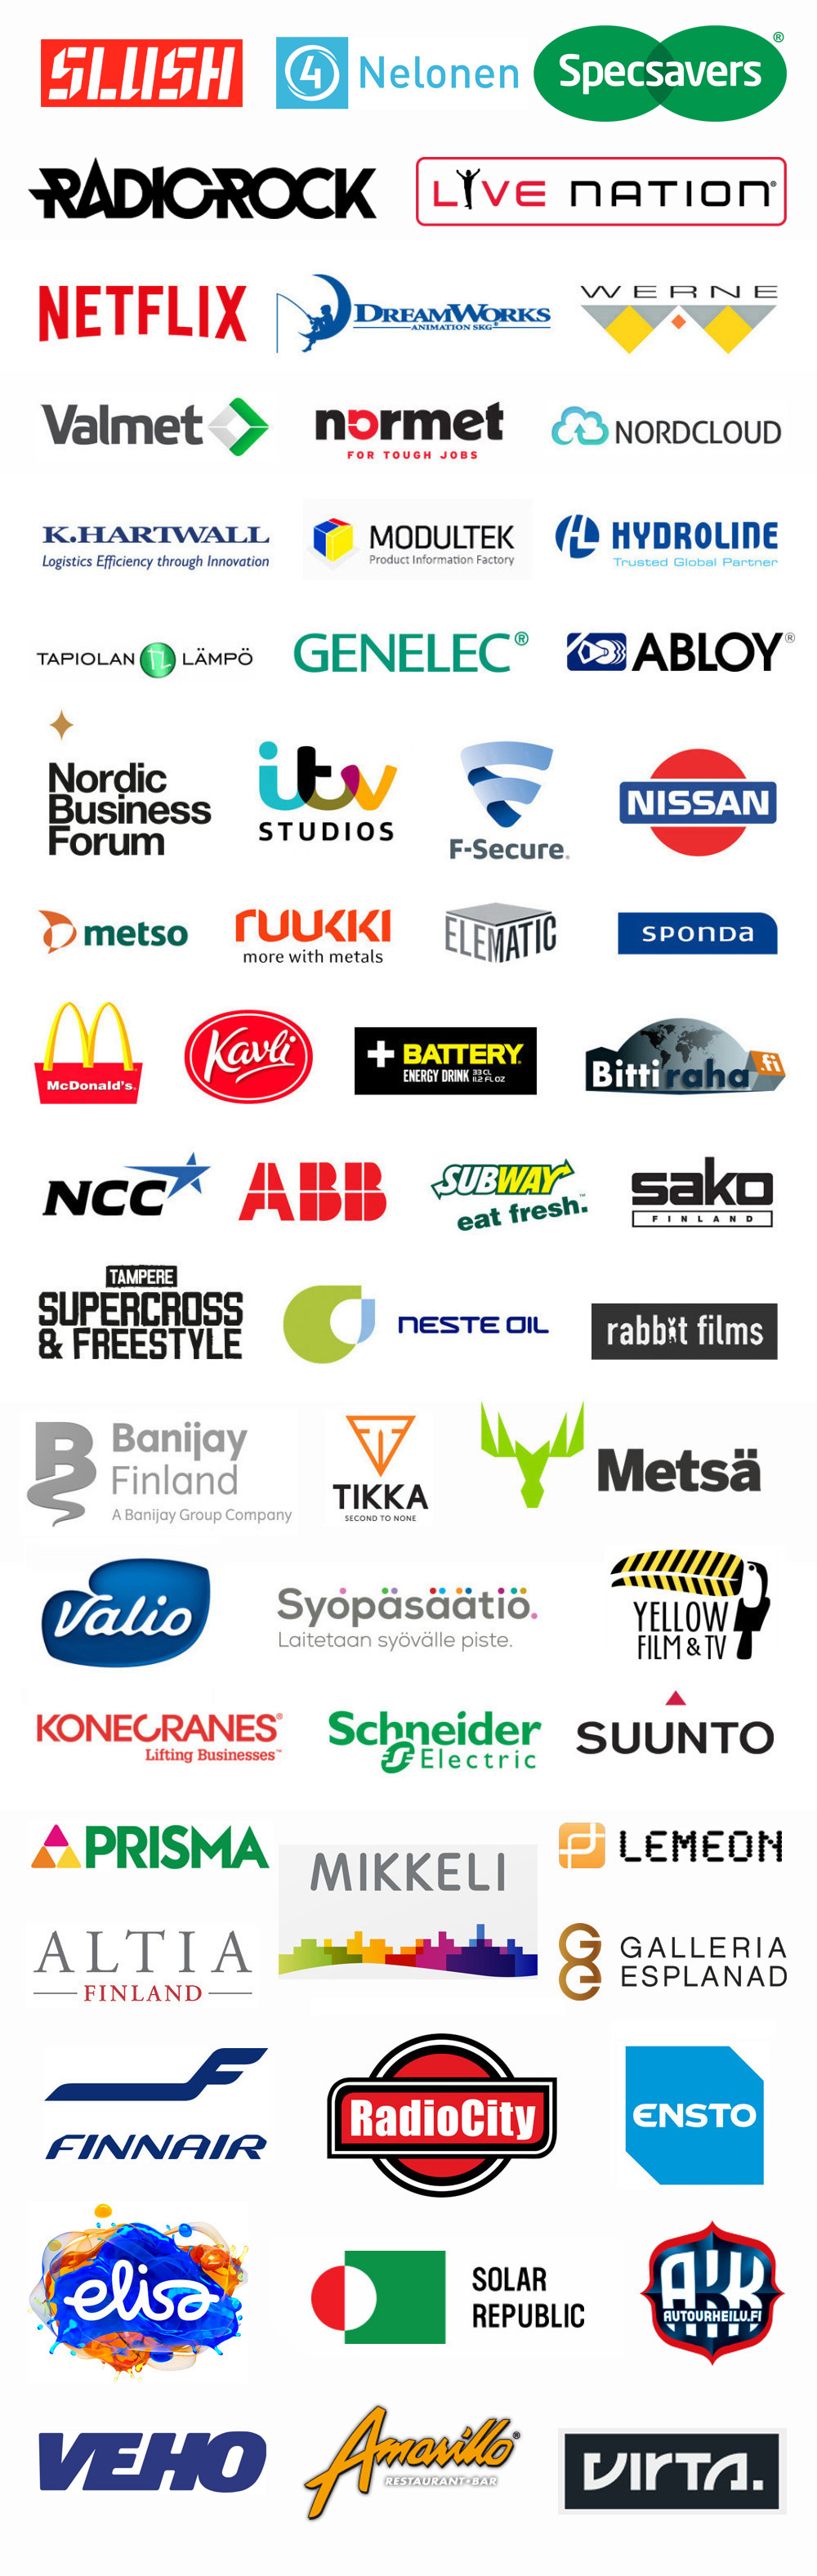 michael-majalahti-client-logos-collage